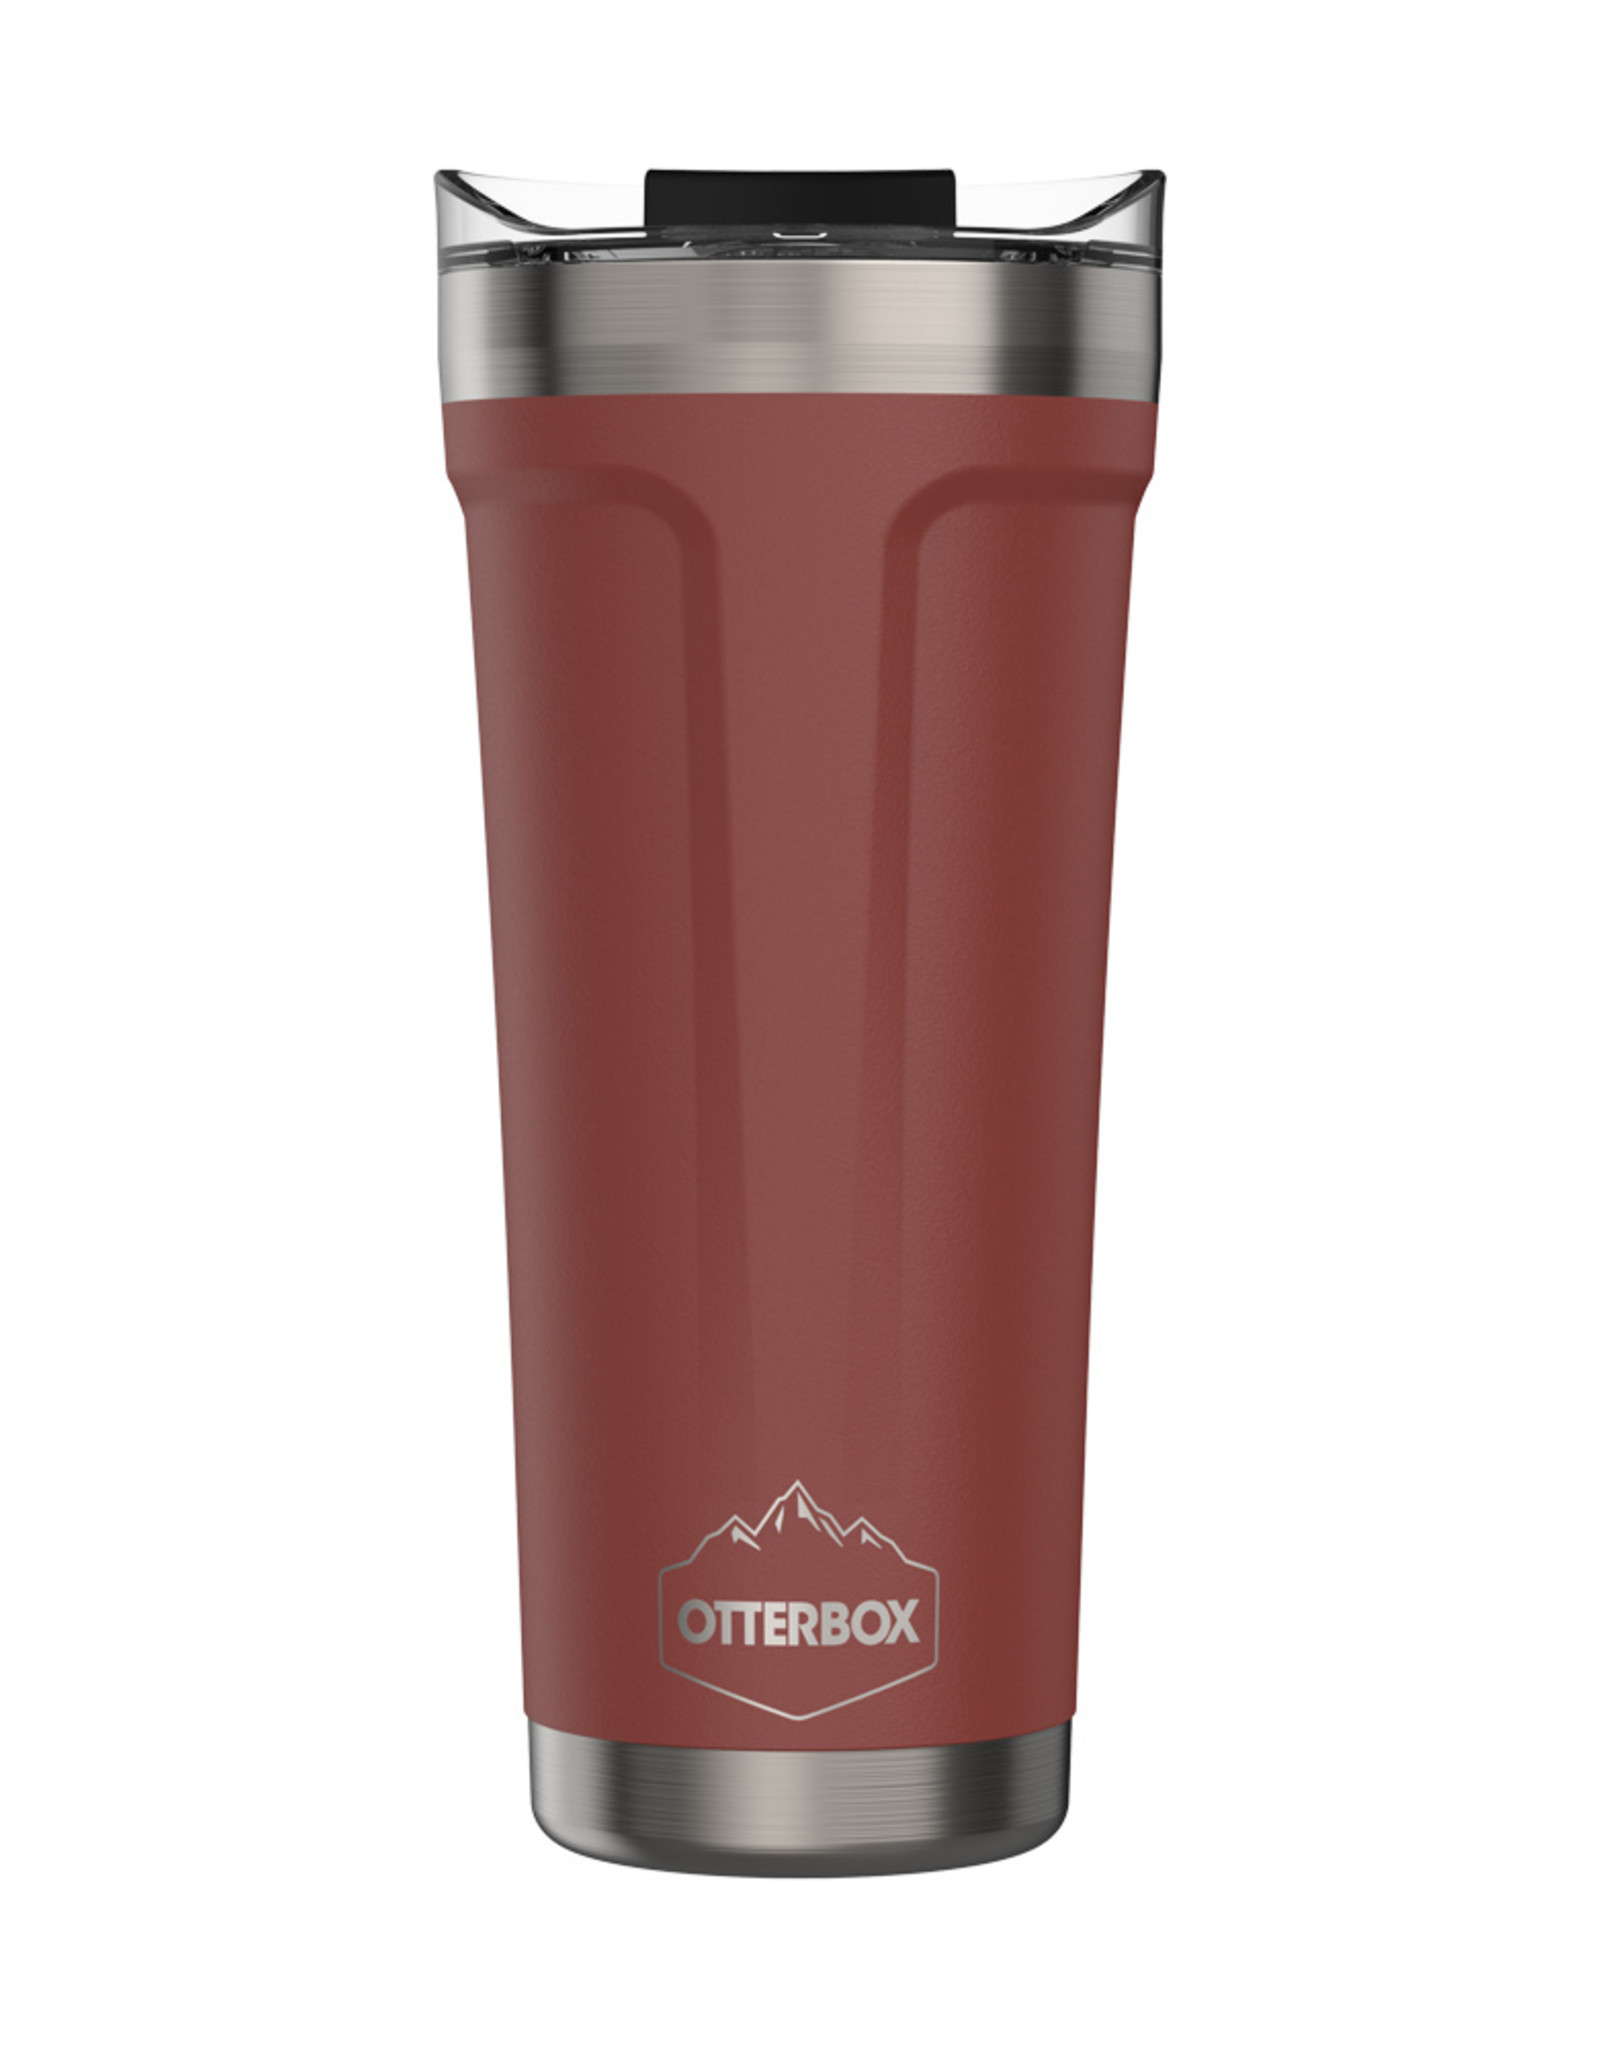 Otterbox Otterbox - Elevation Tumbler with Closed Lid 20 OZ Baked Mud (Stainless Steel/Baked Brick) 102-0100